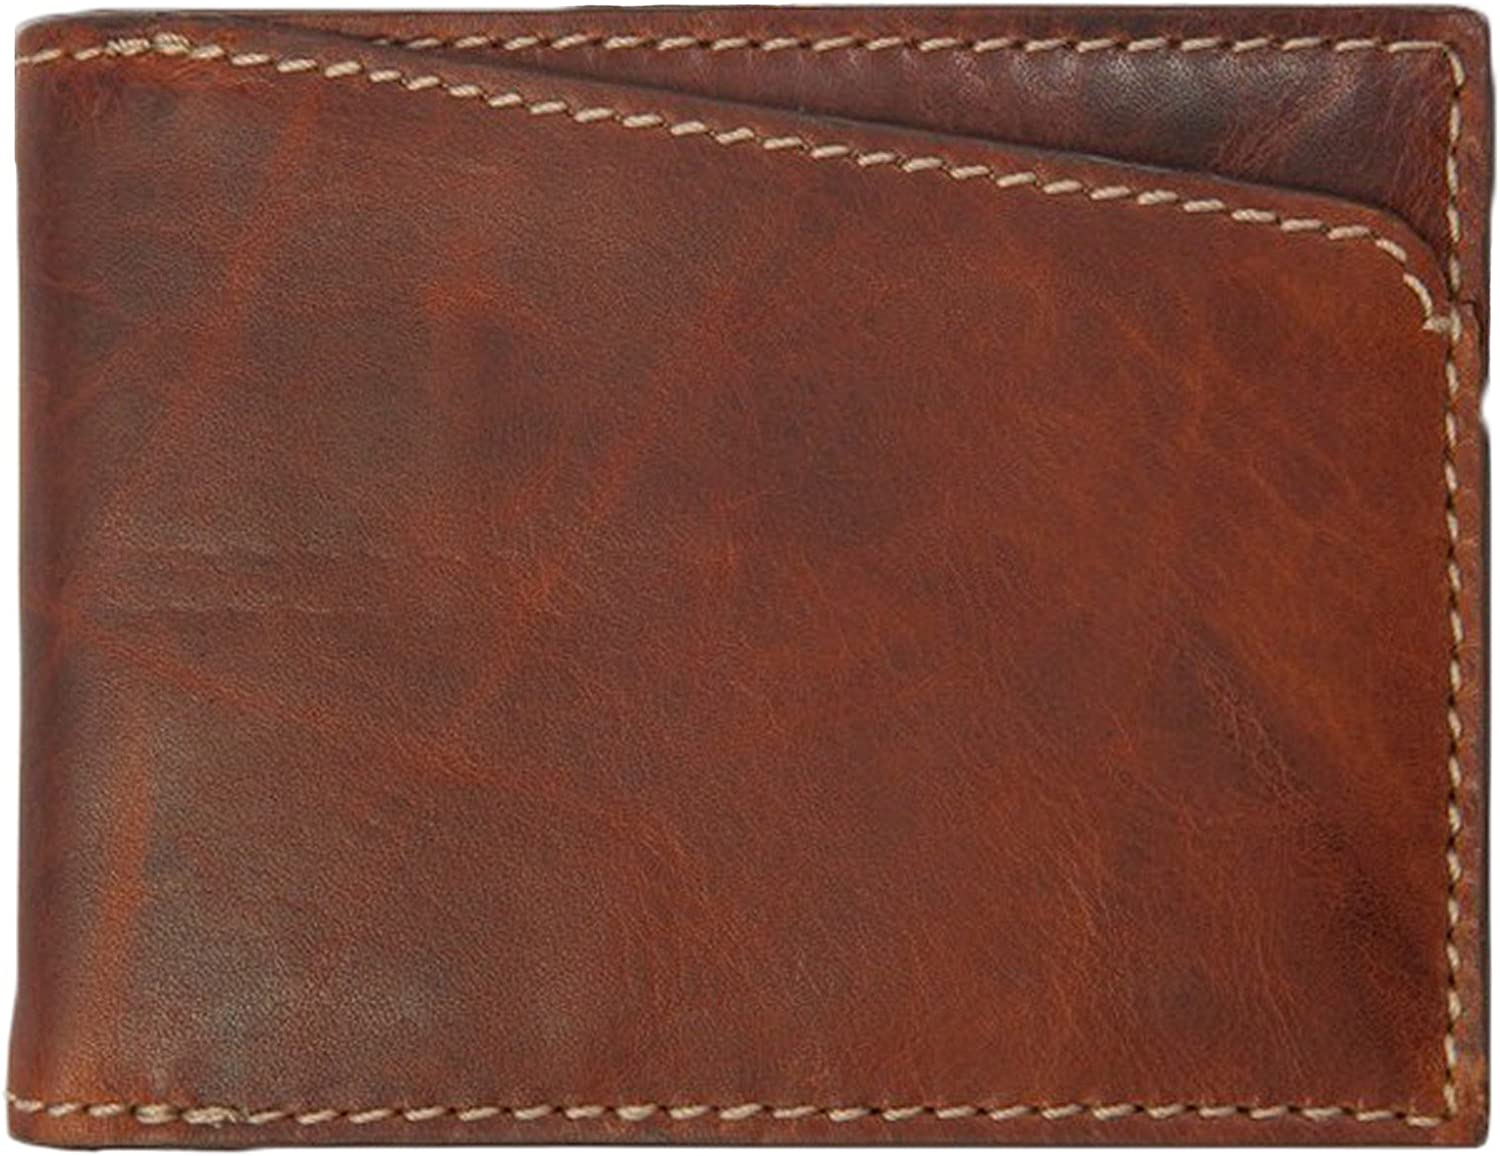 Canyon Outback Leather Sawtooth Canyon Leather Wallet Brown